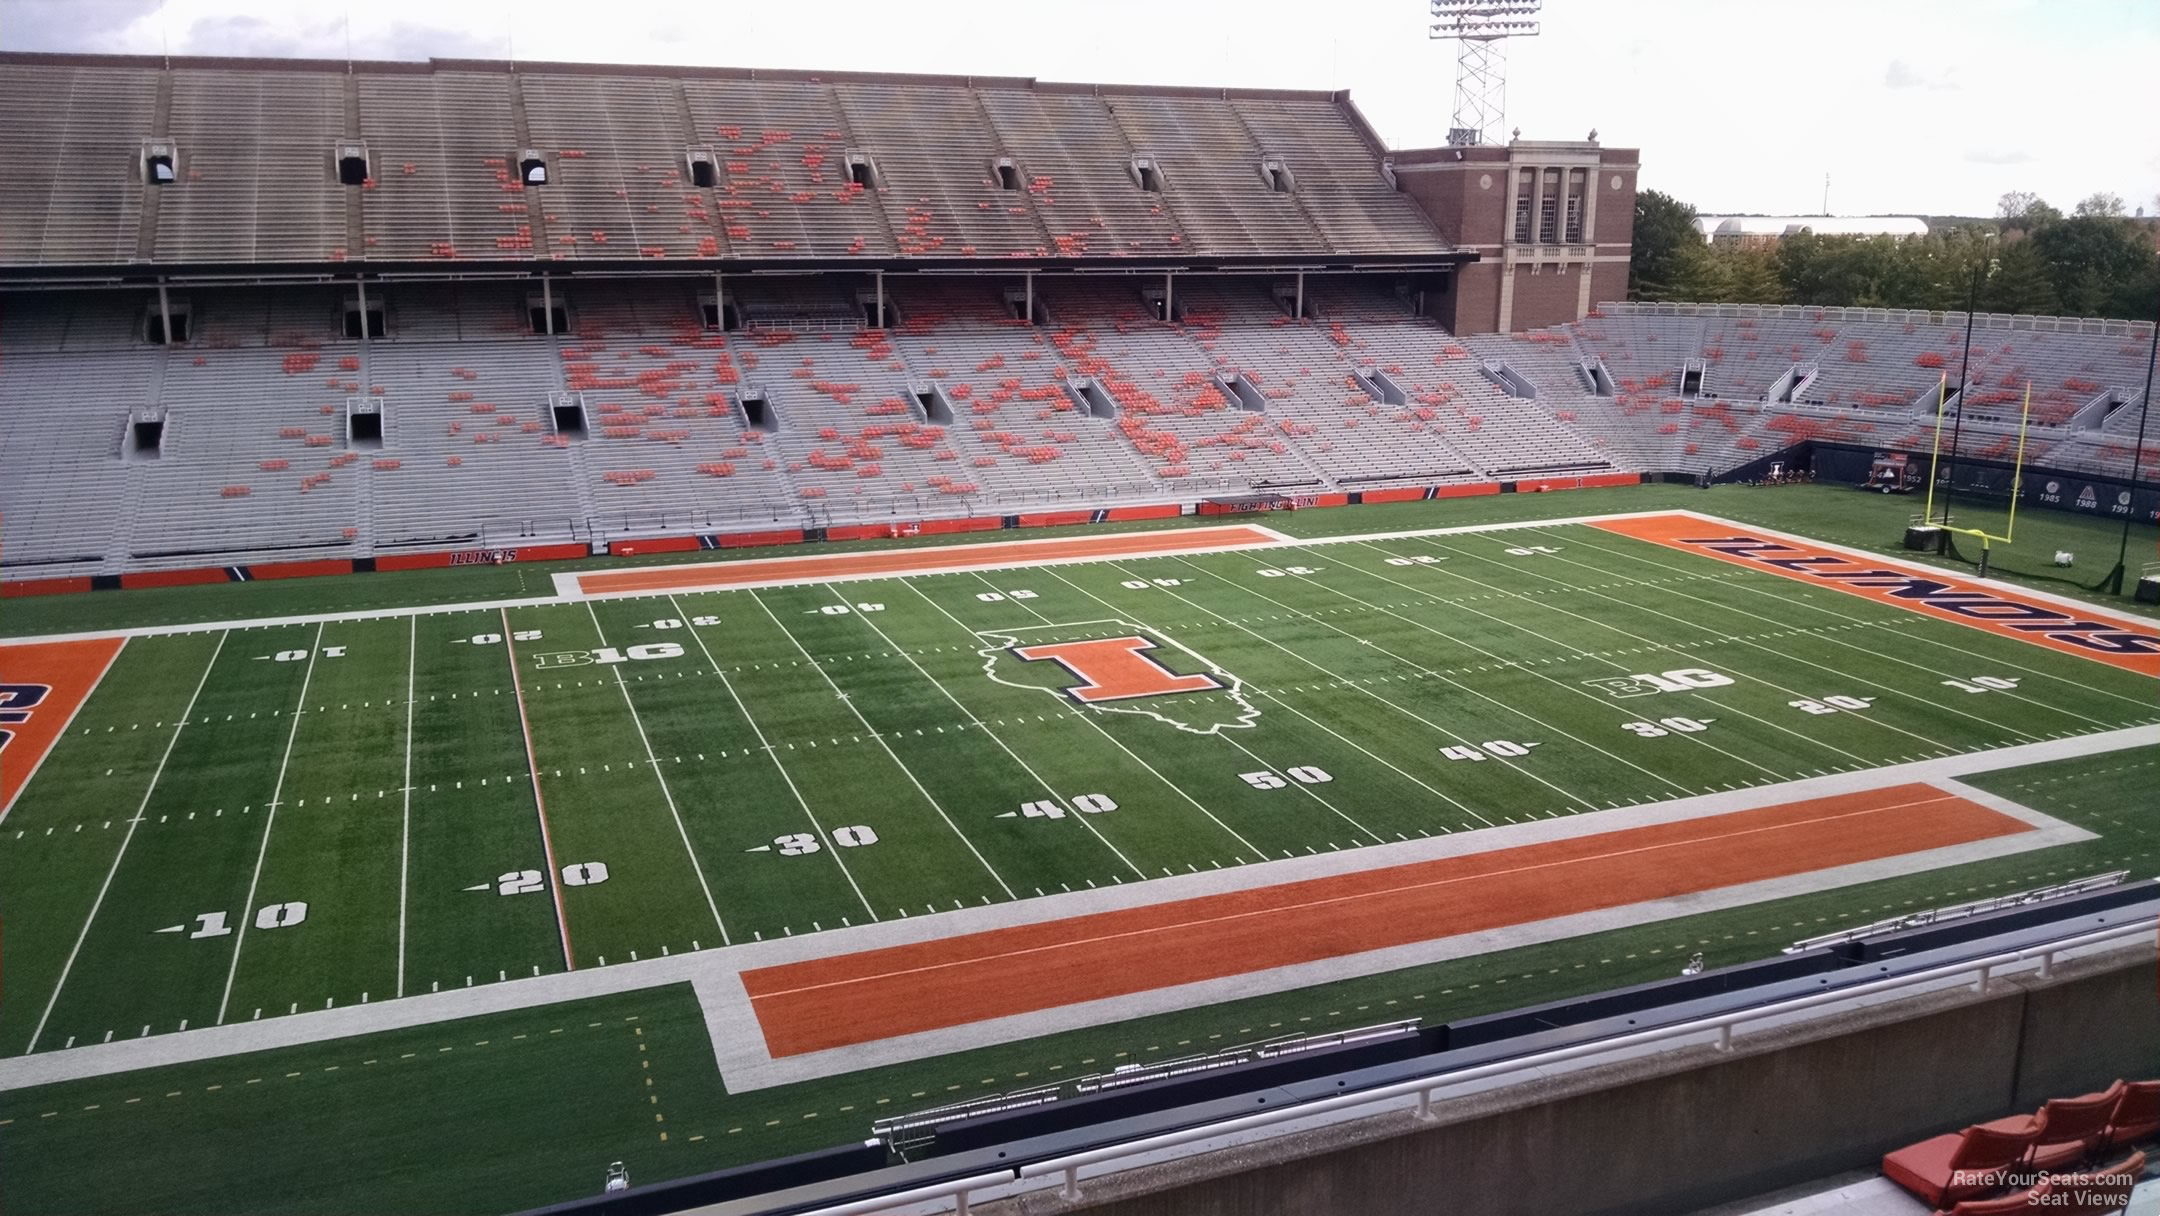 Seat View for Memorial Stadium - IL Section 229, Row 8